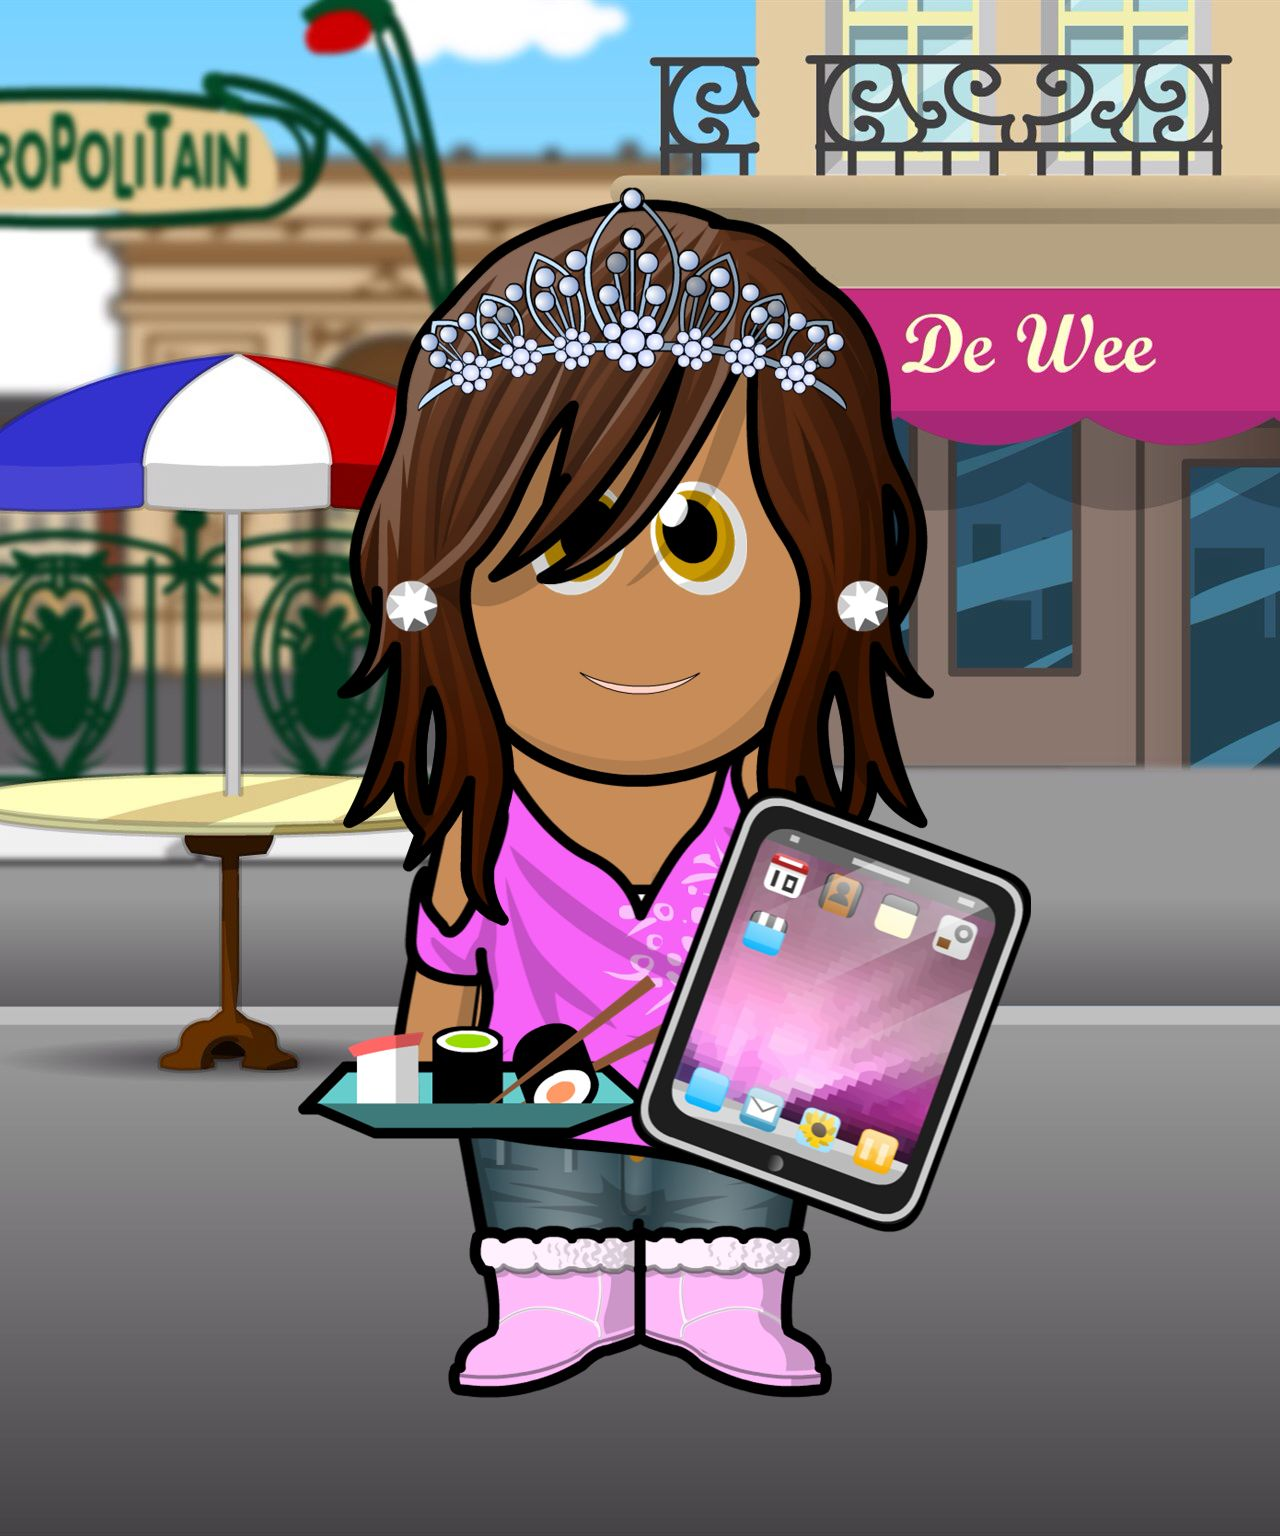 Pin by Makena Pereira on Wee mee Avatar creator, Dolls